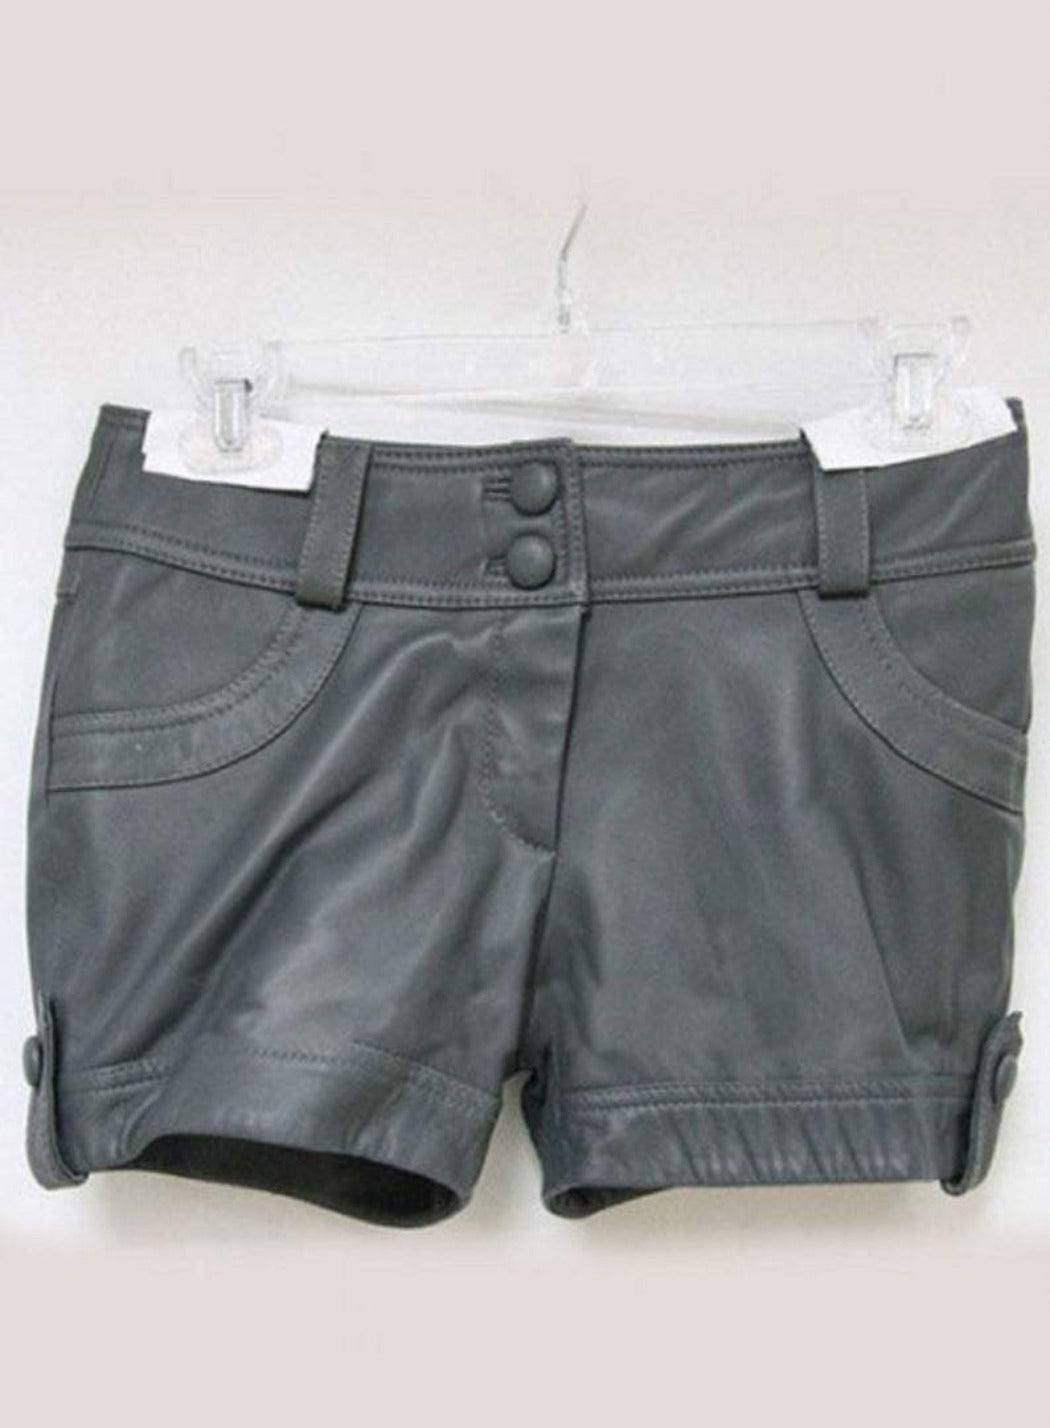 NOORA Womens,Girls & Lady Cargo Short Pant, Ladies Original Lambskin Leather Shorts Pant Casual Wear Shorts Grey Leather Shorts SB149